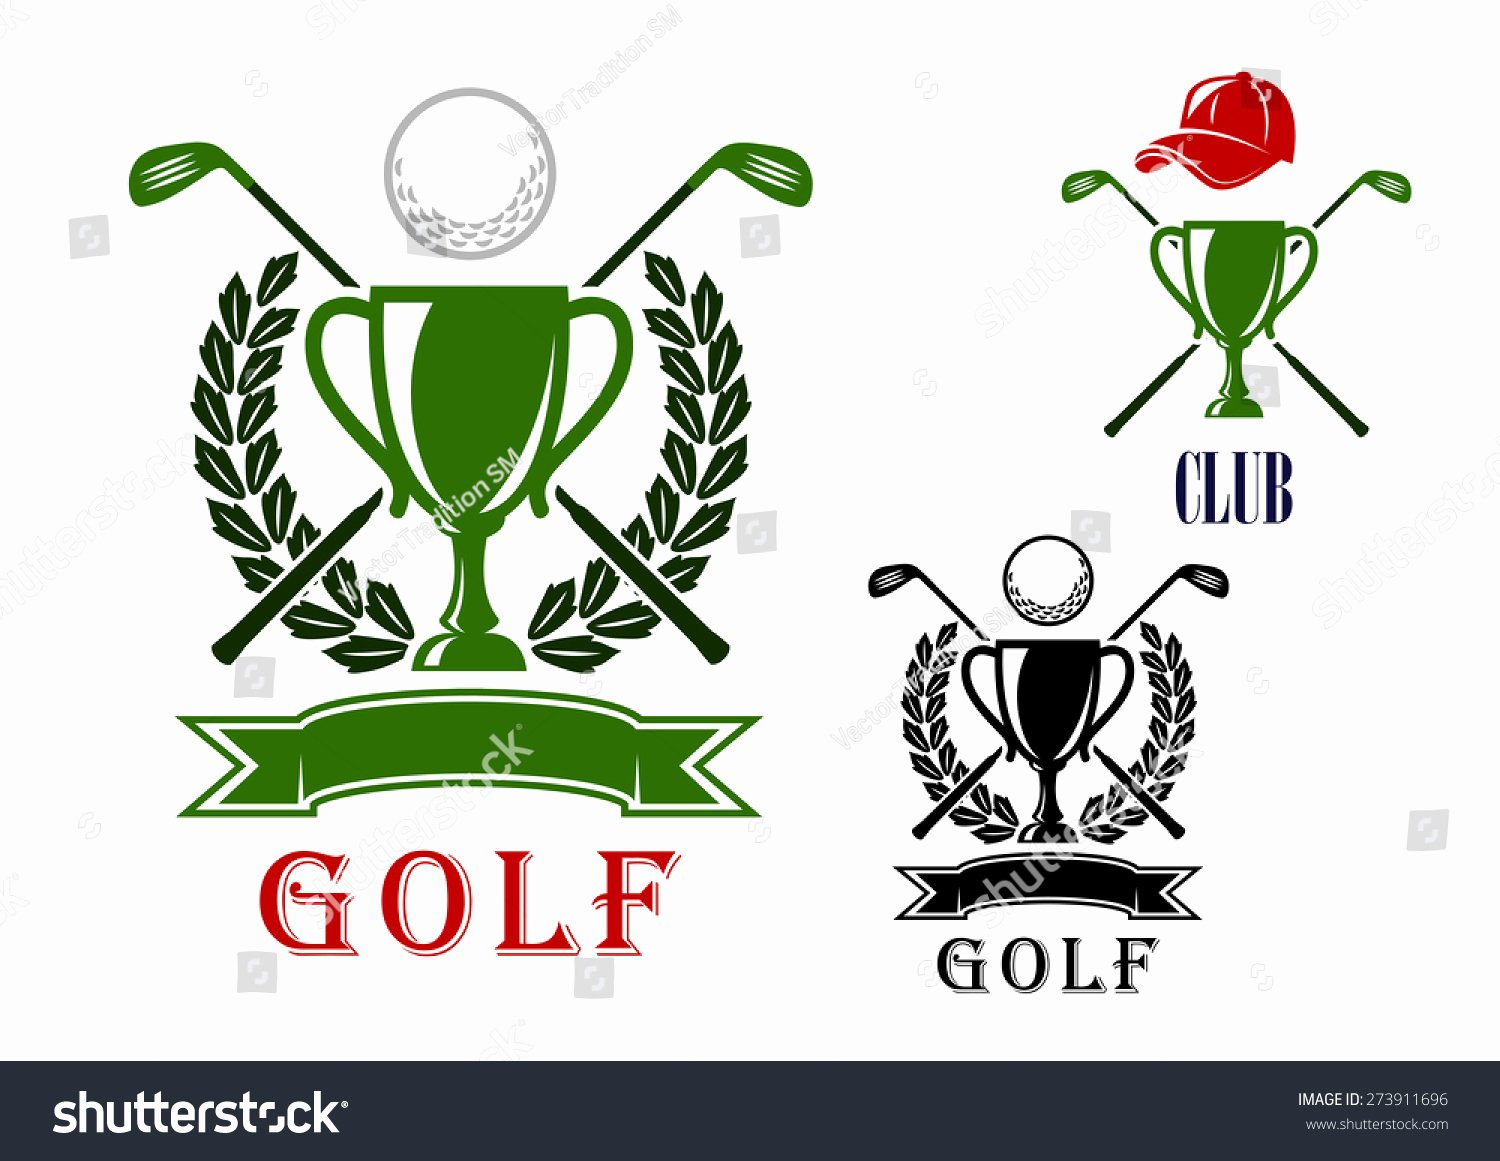 Golf Tee Game Template Lovely Golf Club tournament Emblem Badges Design Stock Vector